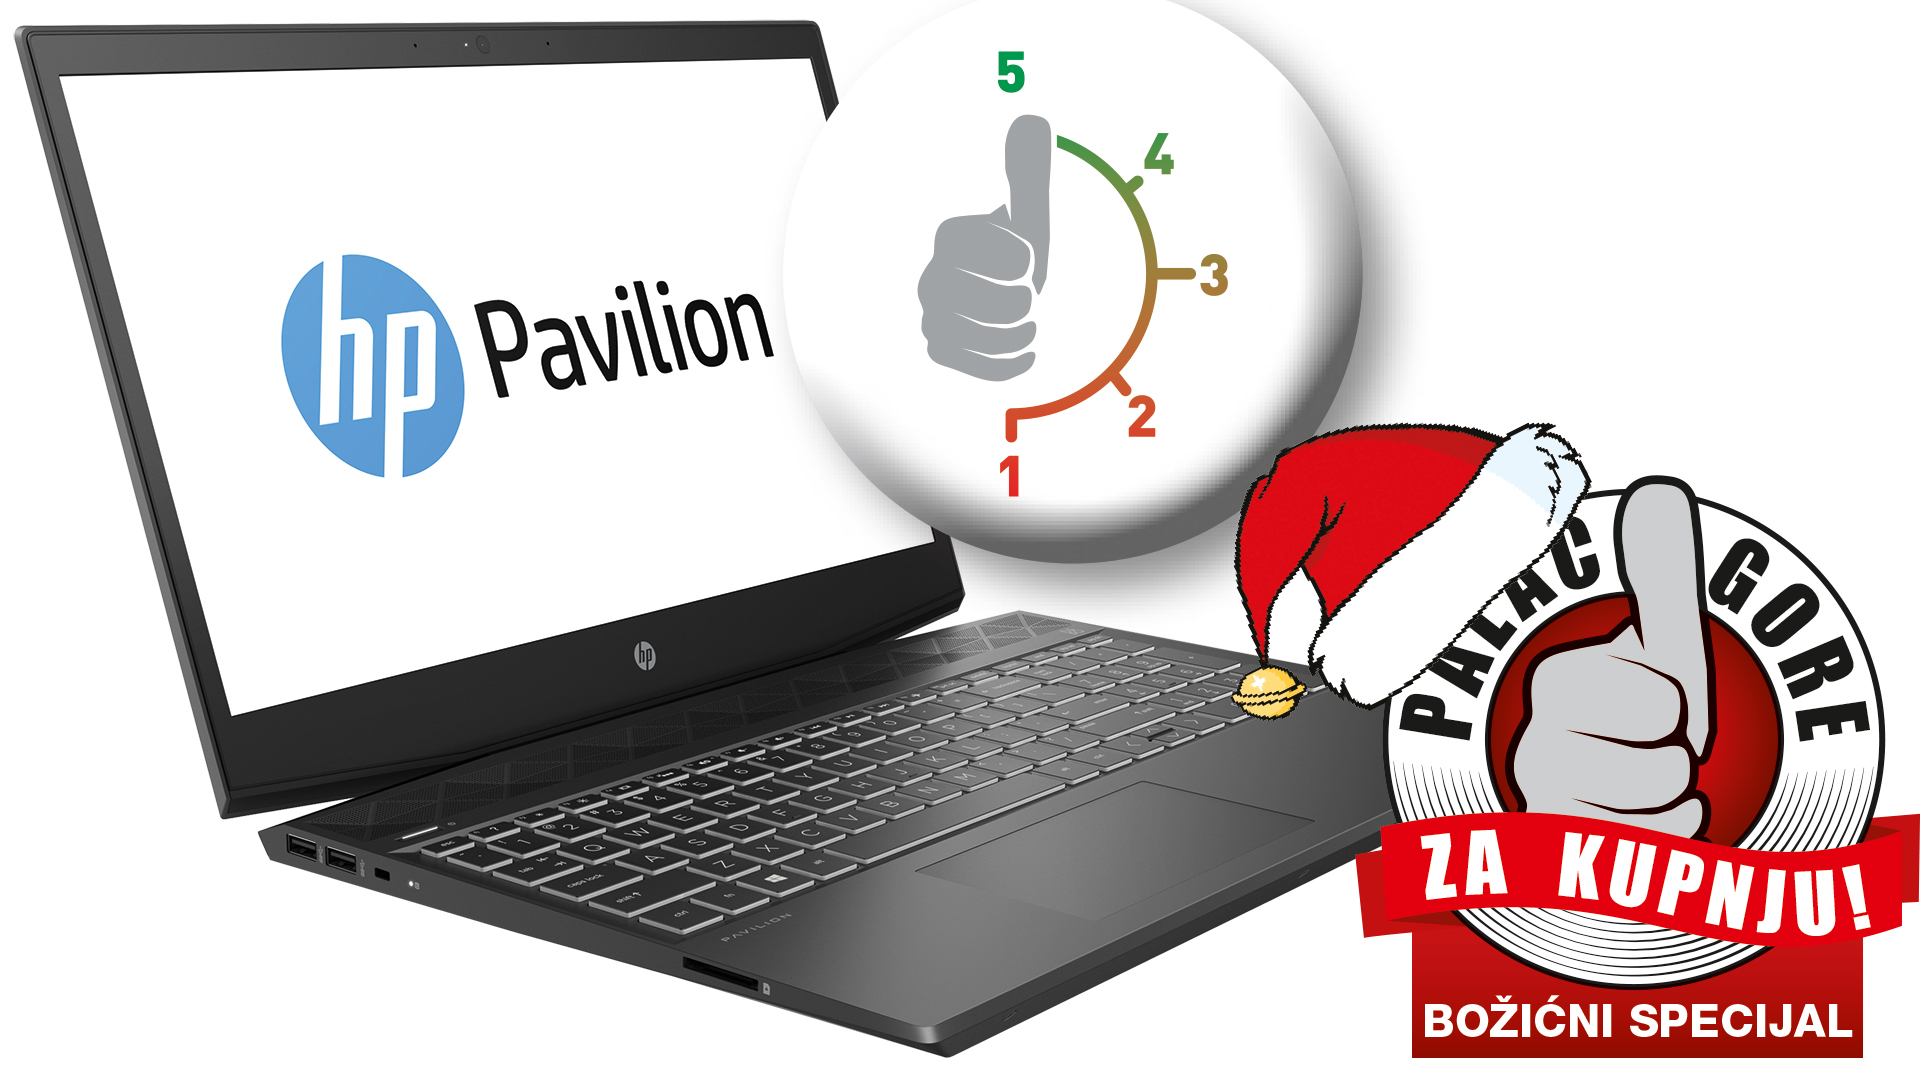 HP Pavilion 15 cx0003nm